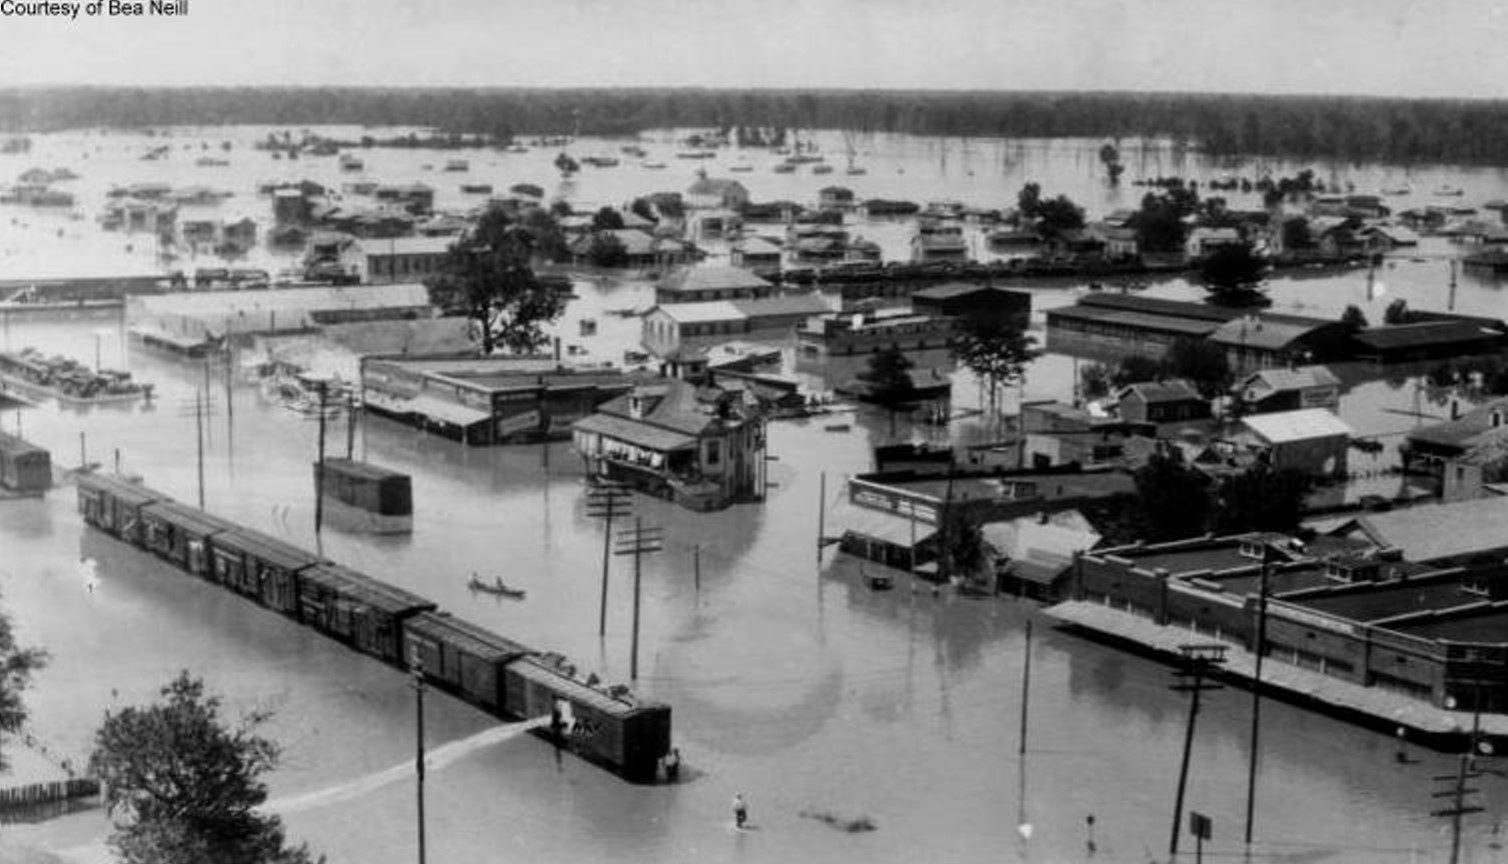 mississippi river flood of 1927 Mississippi river flood of 1927: mississippi river flood of 1927, flooding of the lower mississippi river valley in april 1927, one of the worst natural disasters in.